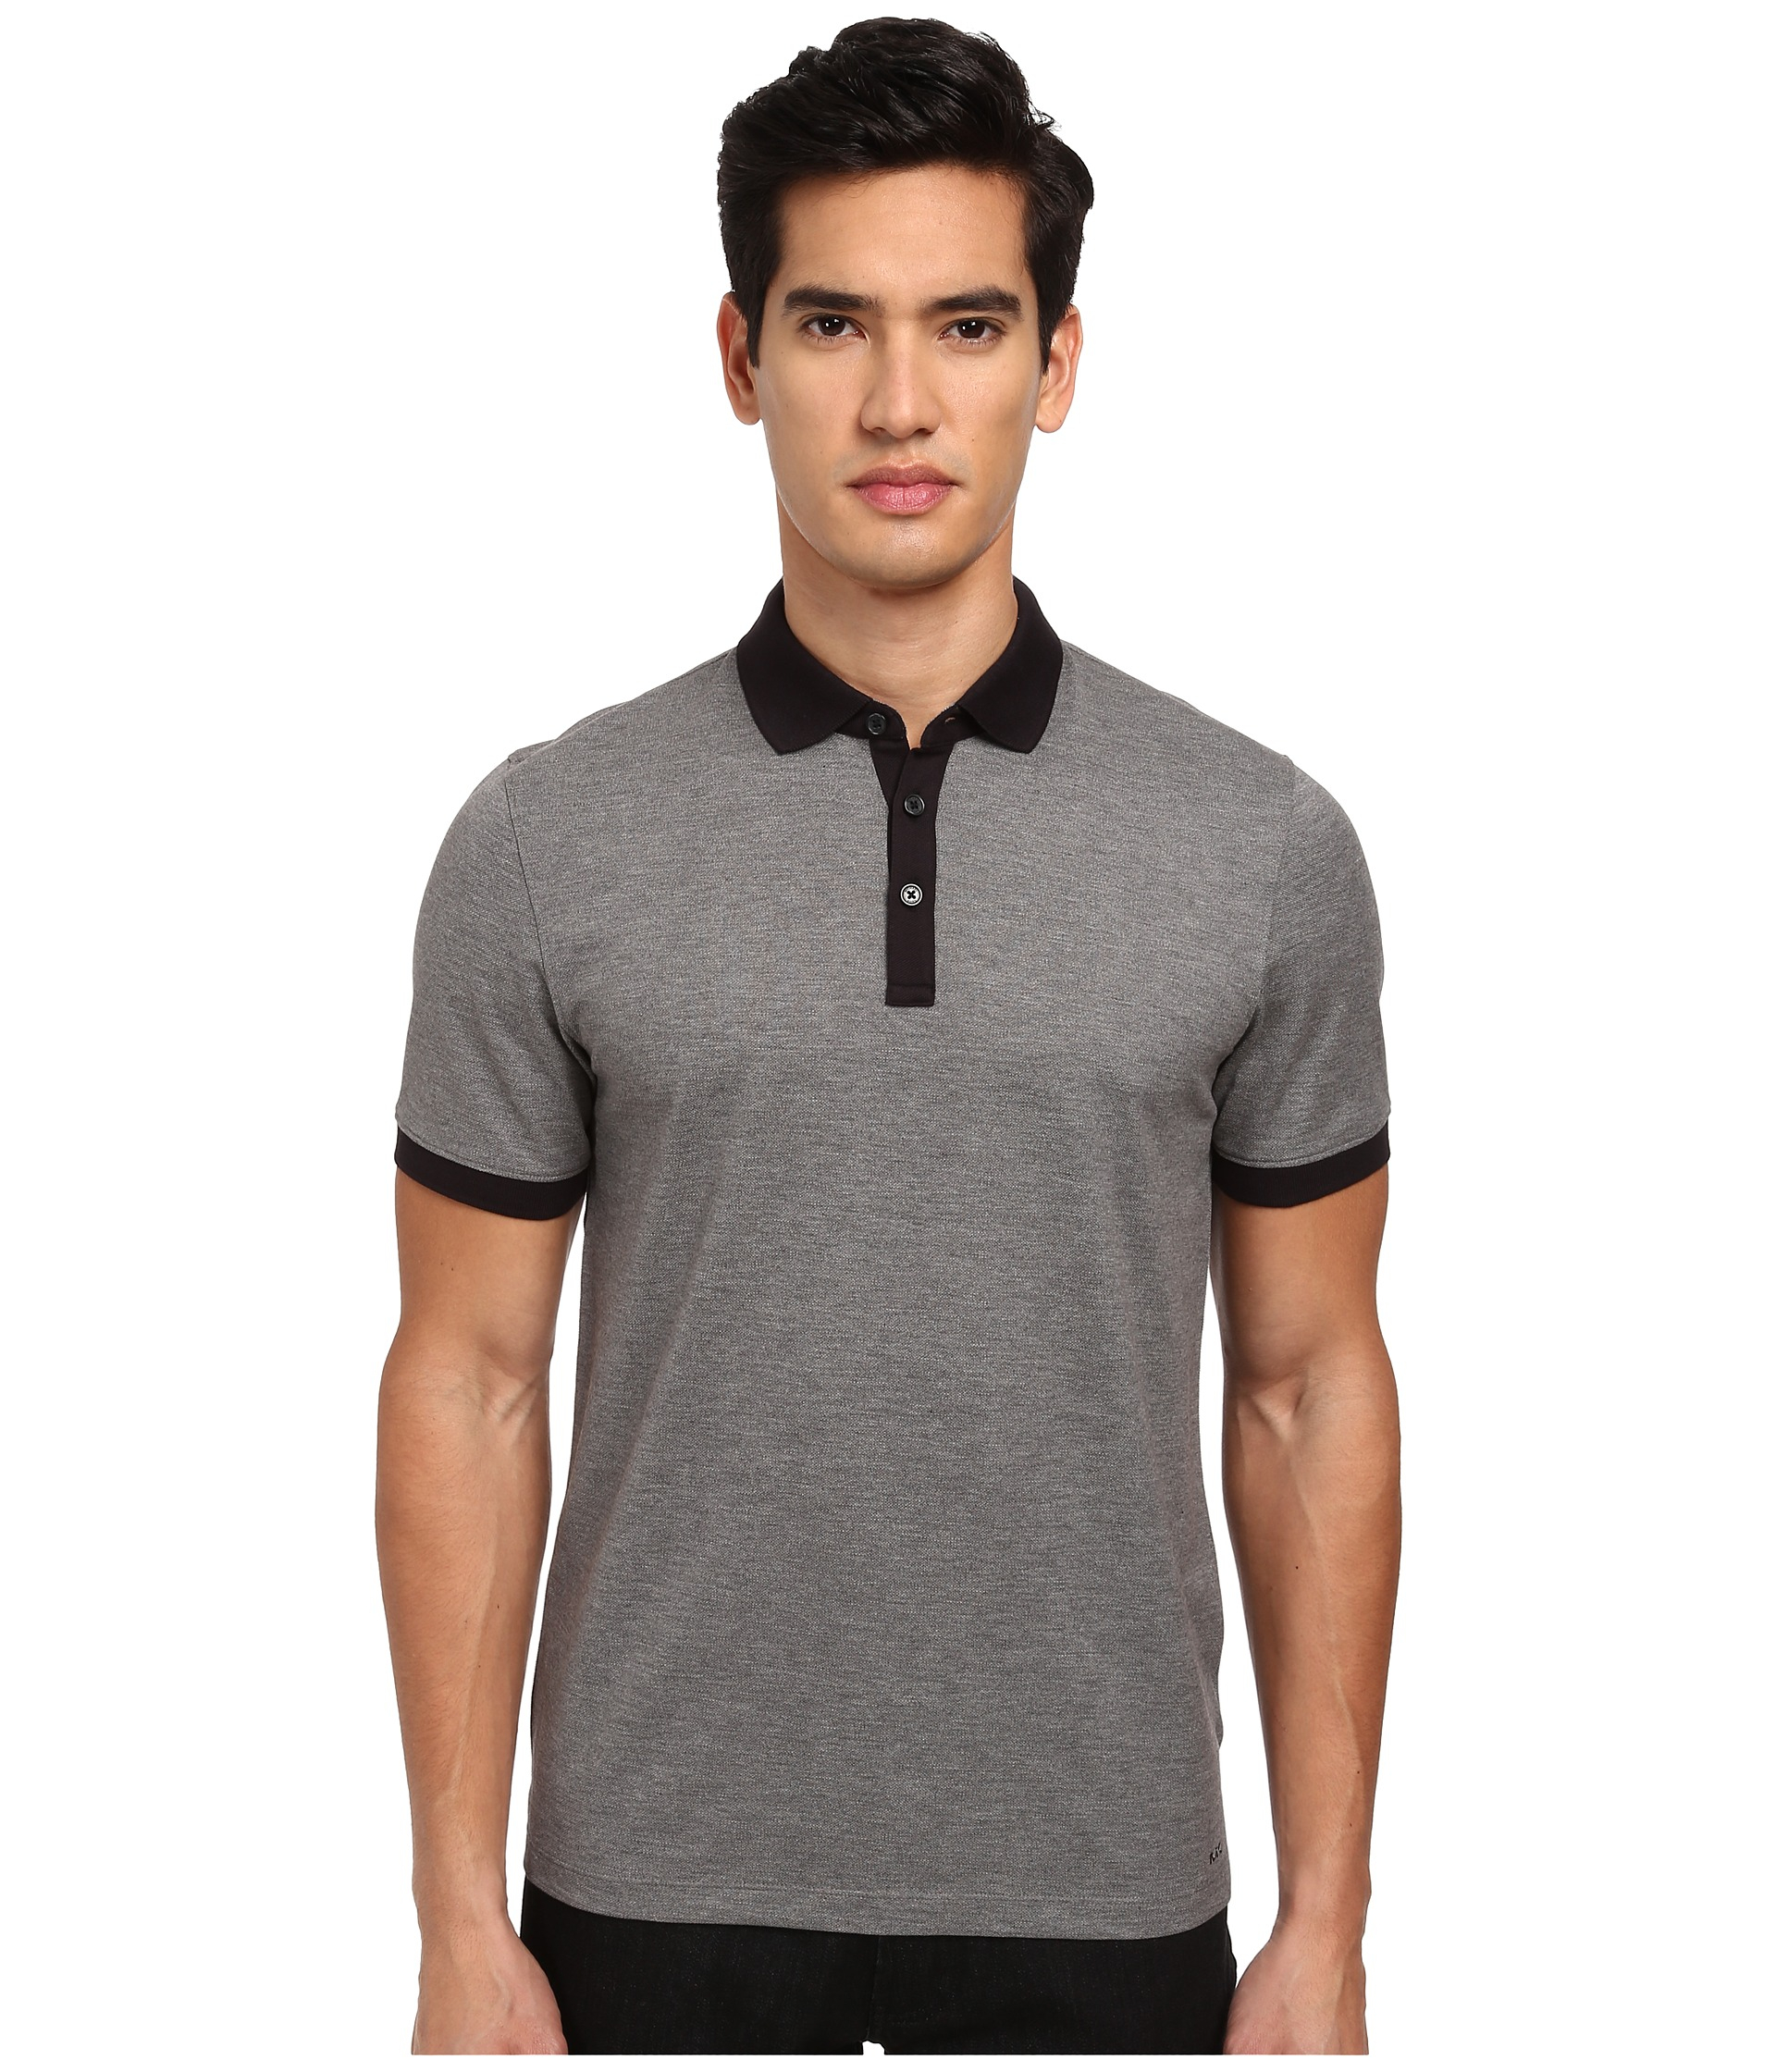 michael kors contrast pique polo shirt in gray for men lyst